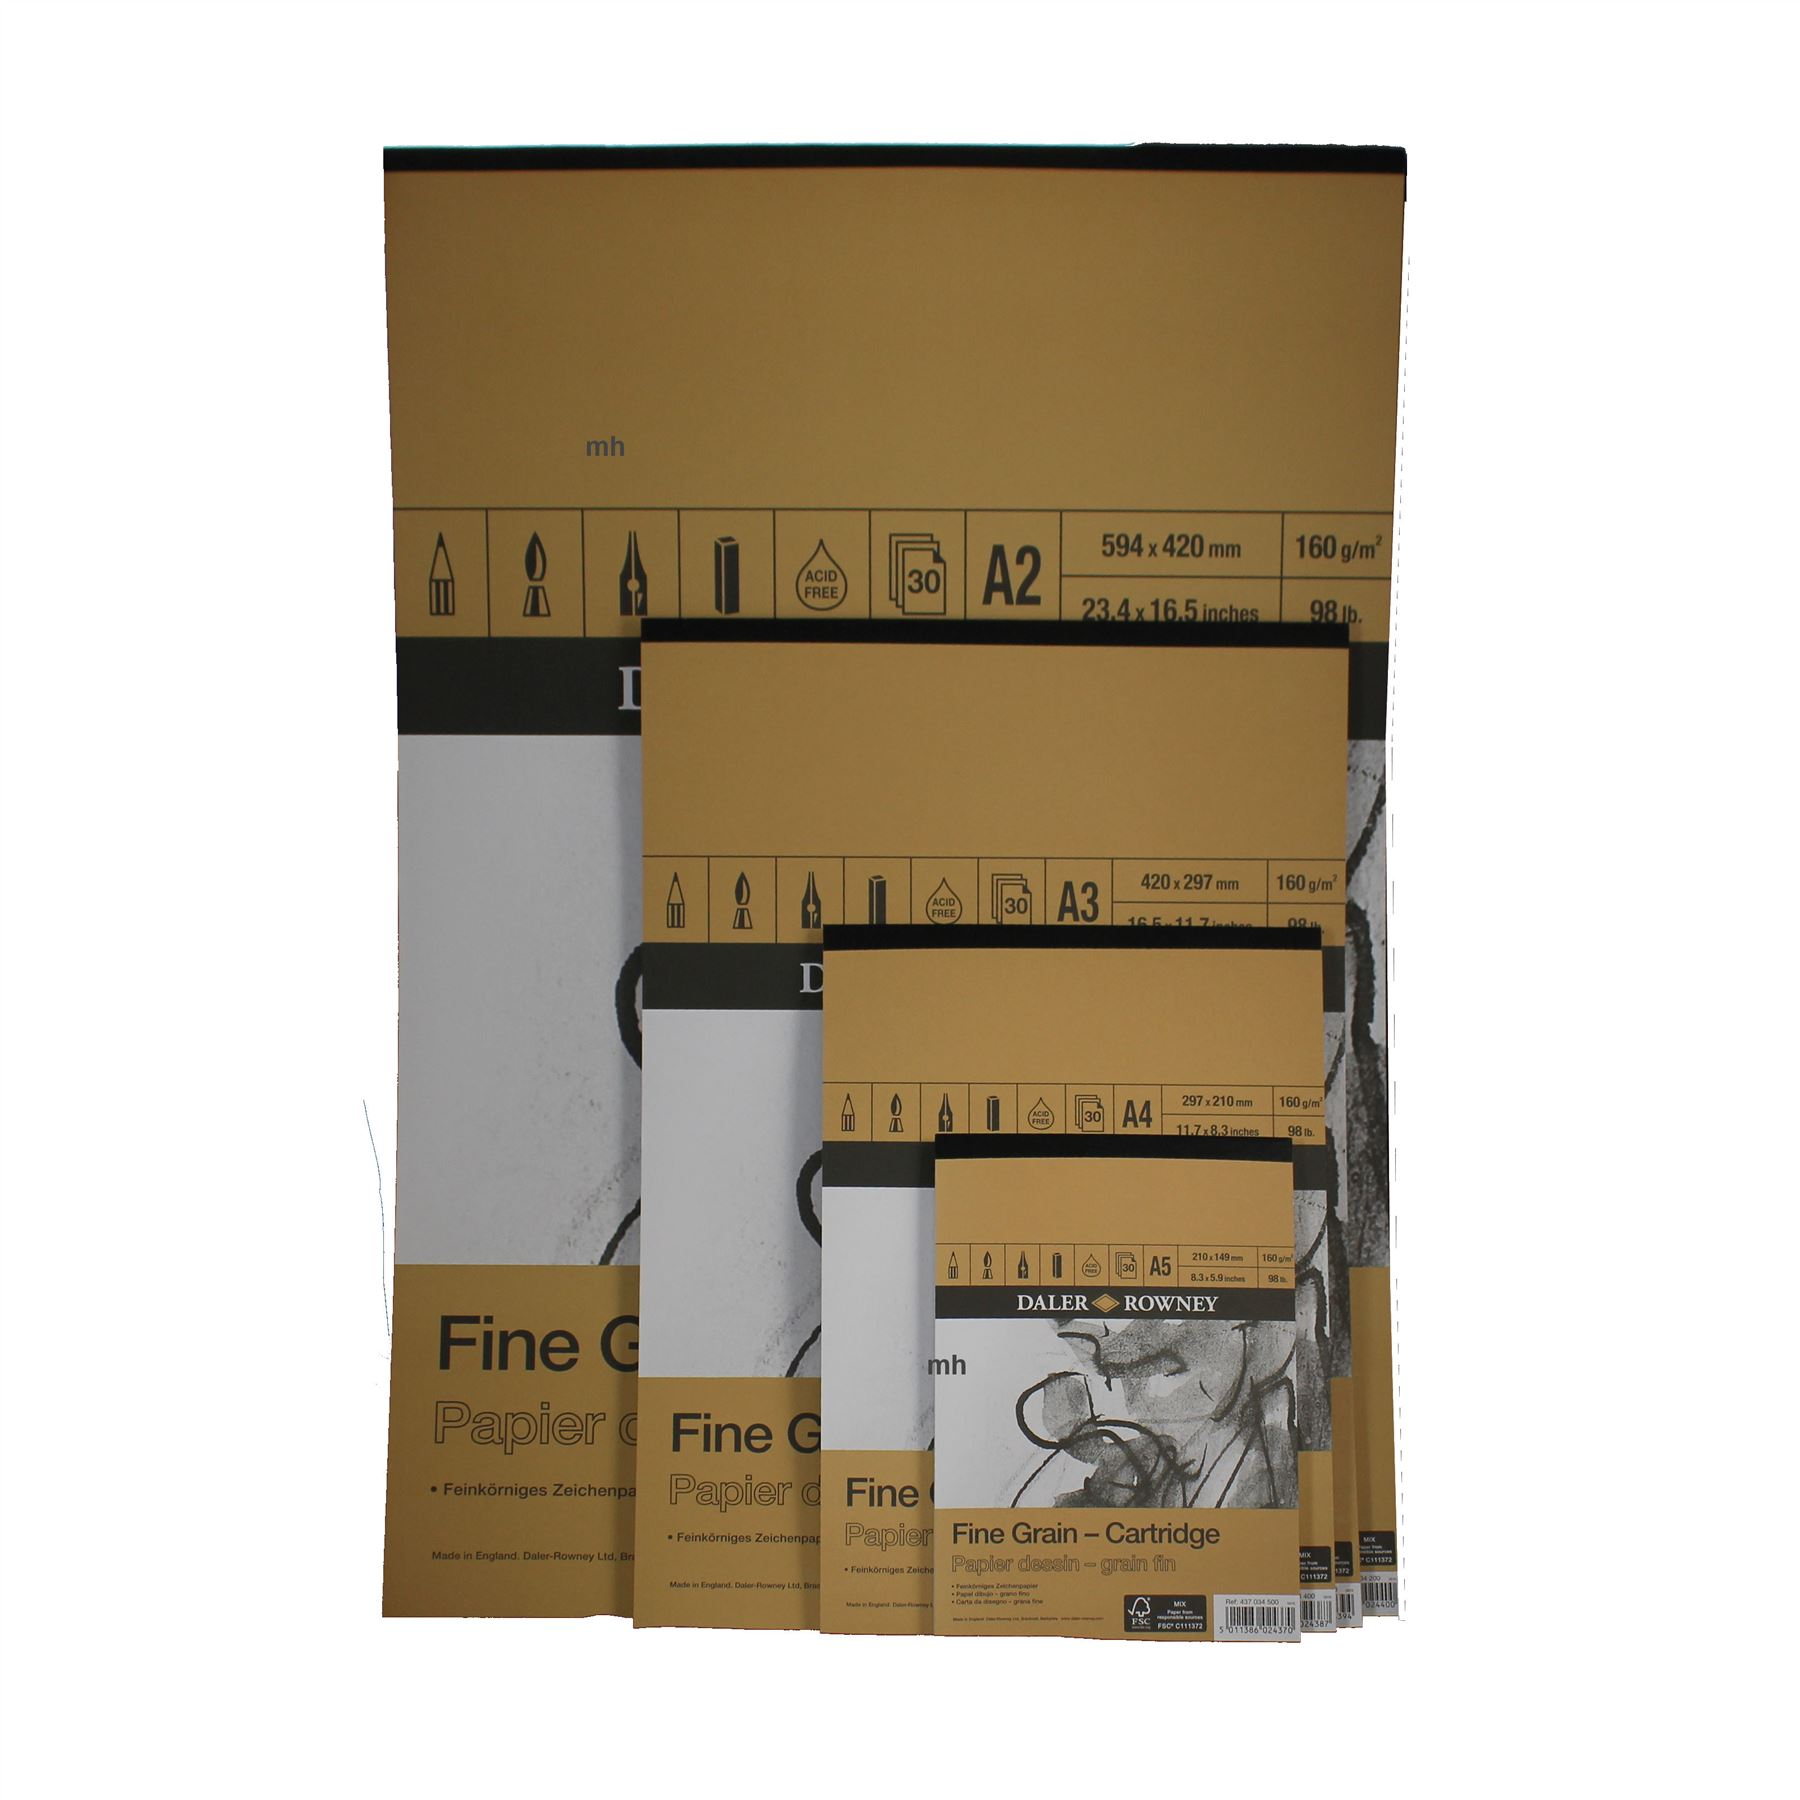 cartridge paper Find great deals on ebay for paper cartridge and civil war cartridge shop with confidence.